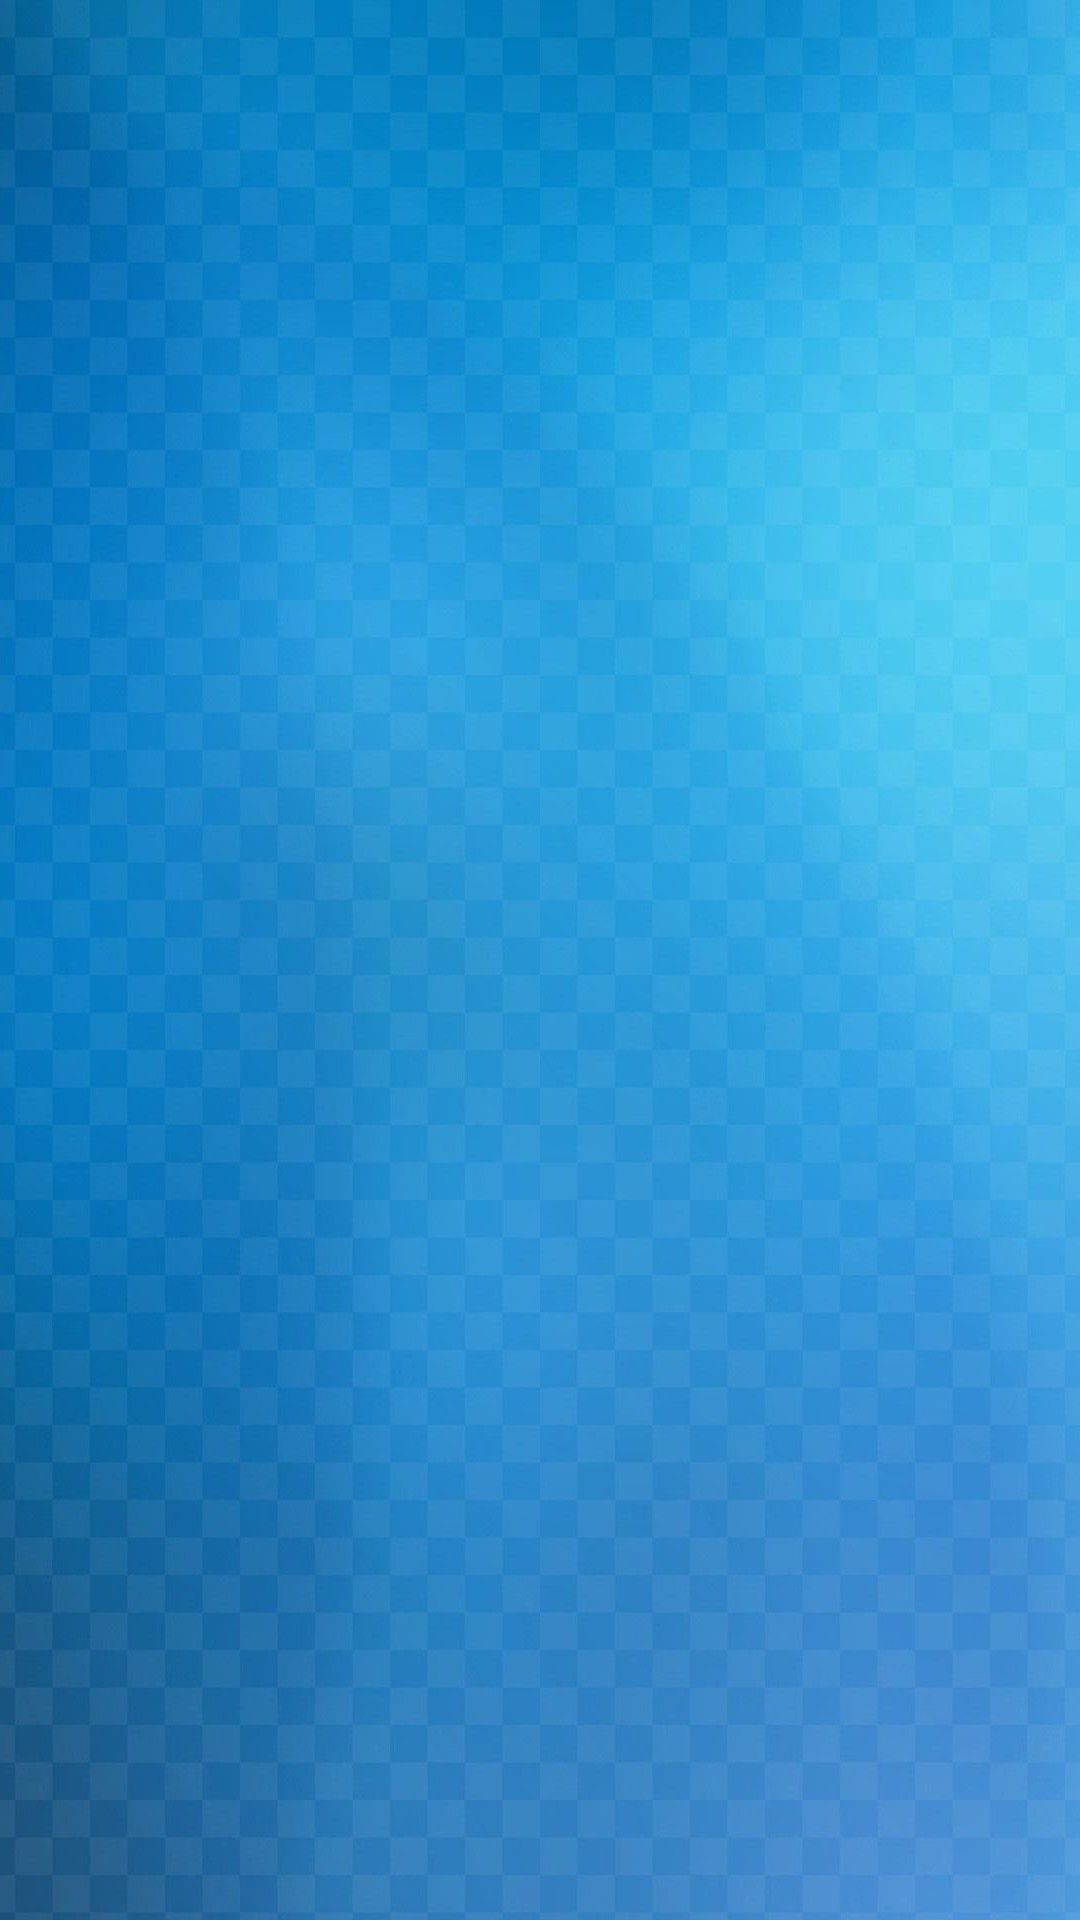 Blue Wallpaper Hd For Iphone 6 Best Iphone Wallpaper Blue Wallpapers Iphone Wallpaper Wallpaper